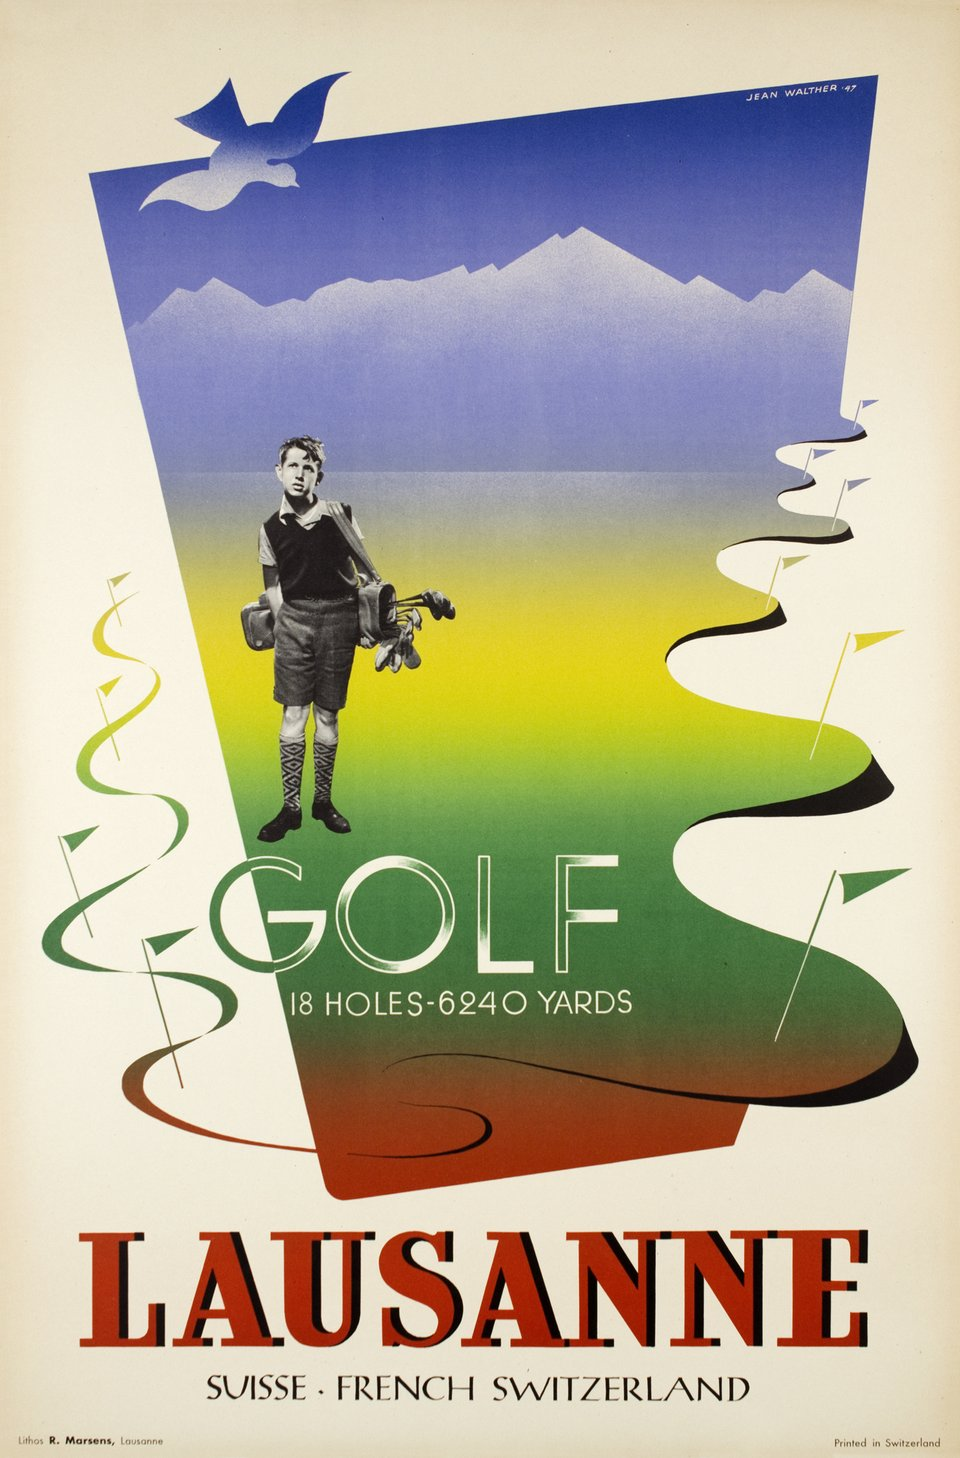 Lausanne Golf 18 holes , Suisse, French Switzerland – Affiche ancienne – Jean WALTHER – 1947